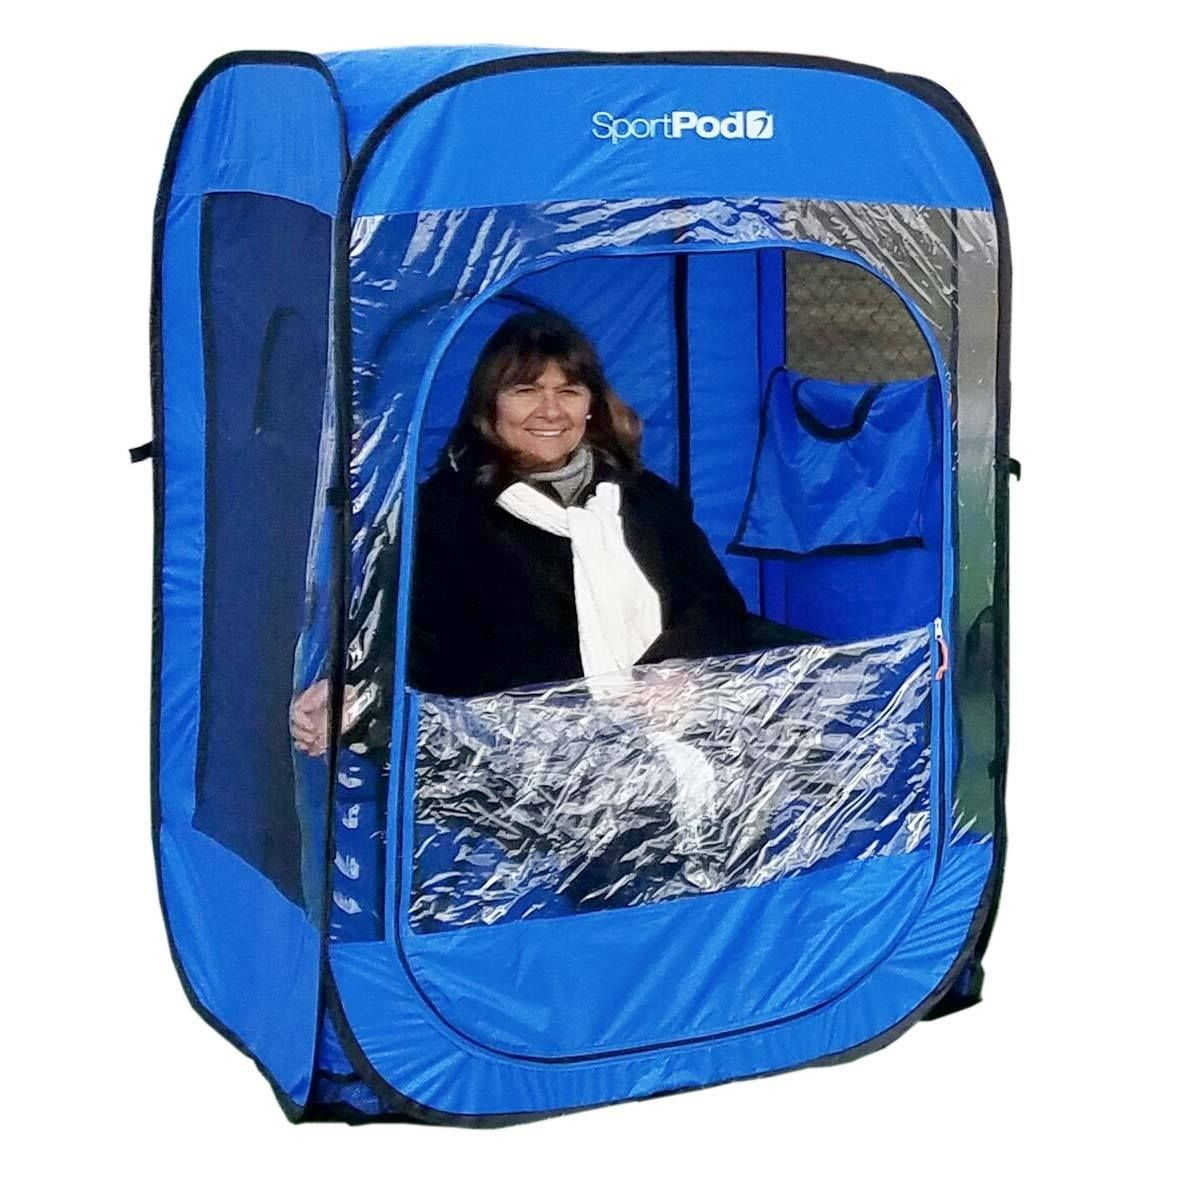 SportPod pop-up tent - Stay warm u0026 dry at your kids sporting event with  sc 1 st  Pinterest & SportPod pop-up tent - Stay warm u0026 dry at your kids sporting event ...